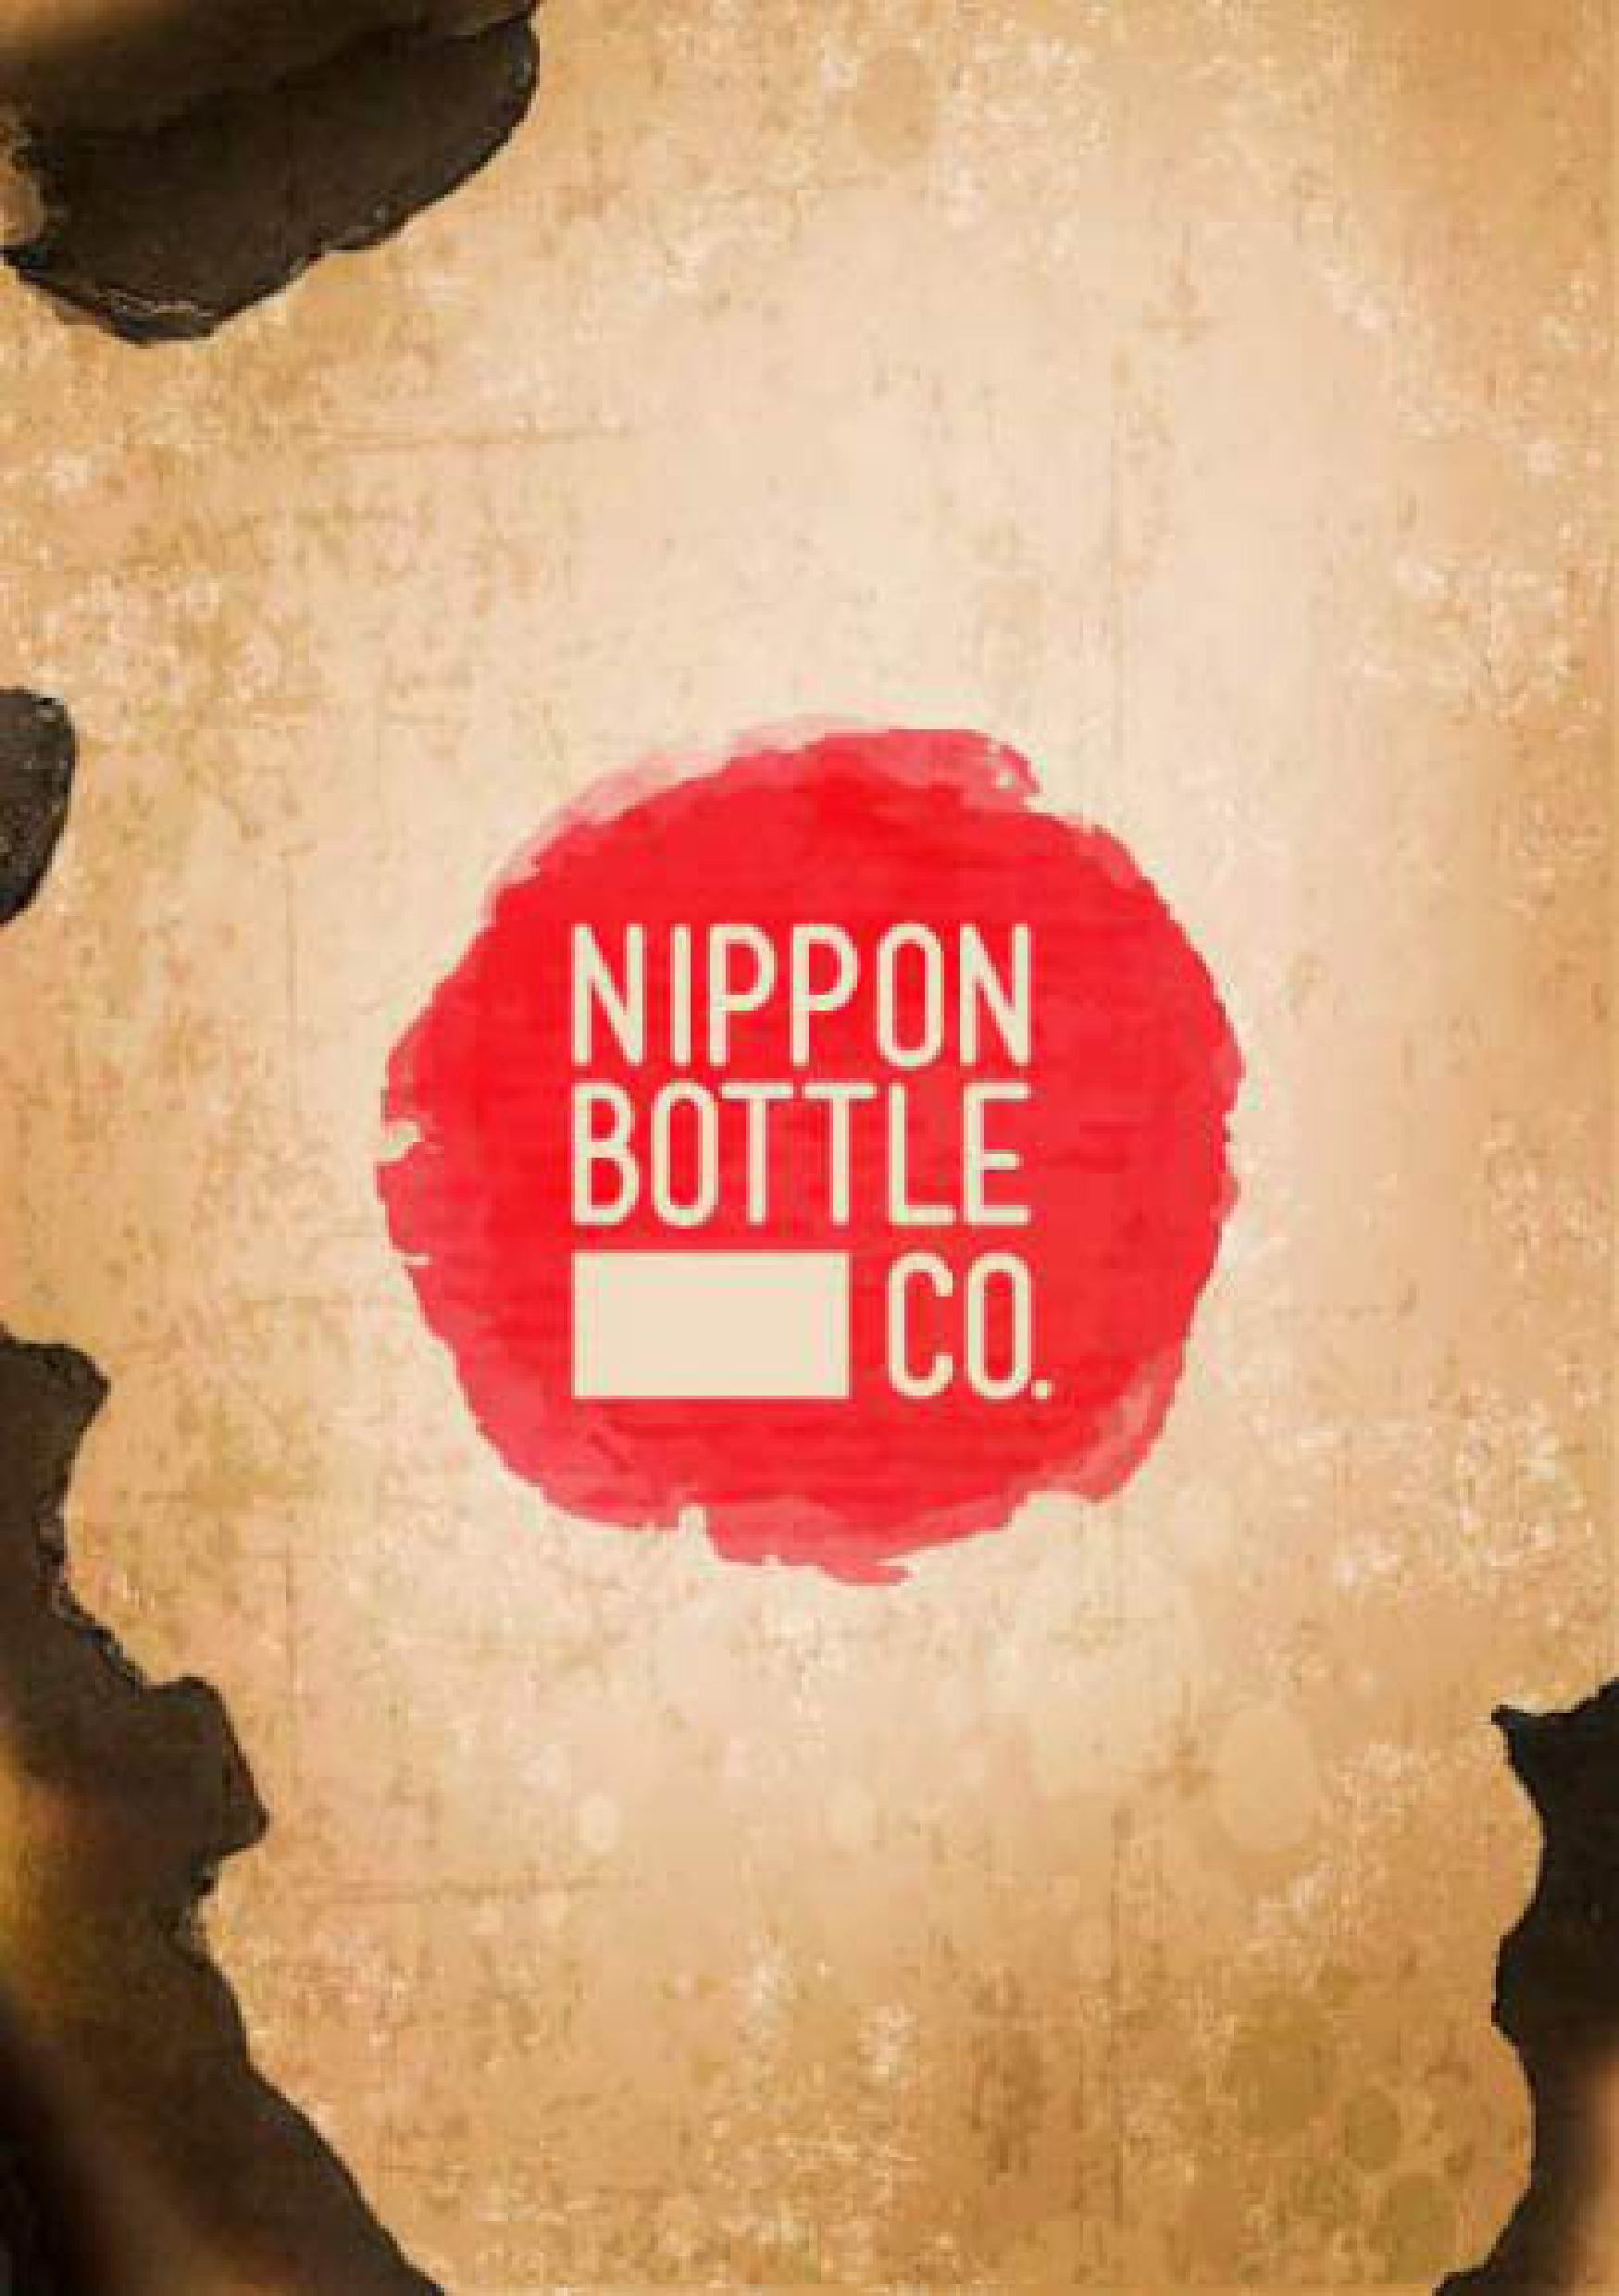 Nippon Bottle Co. Menu